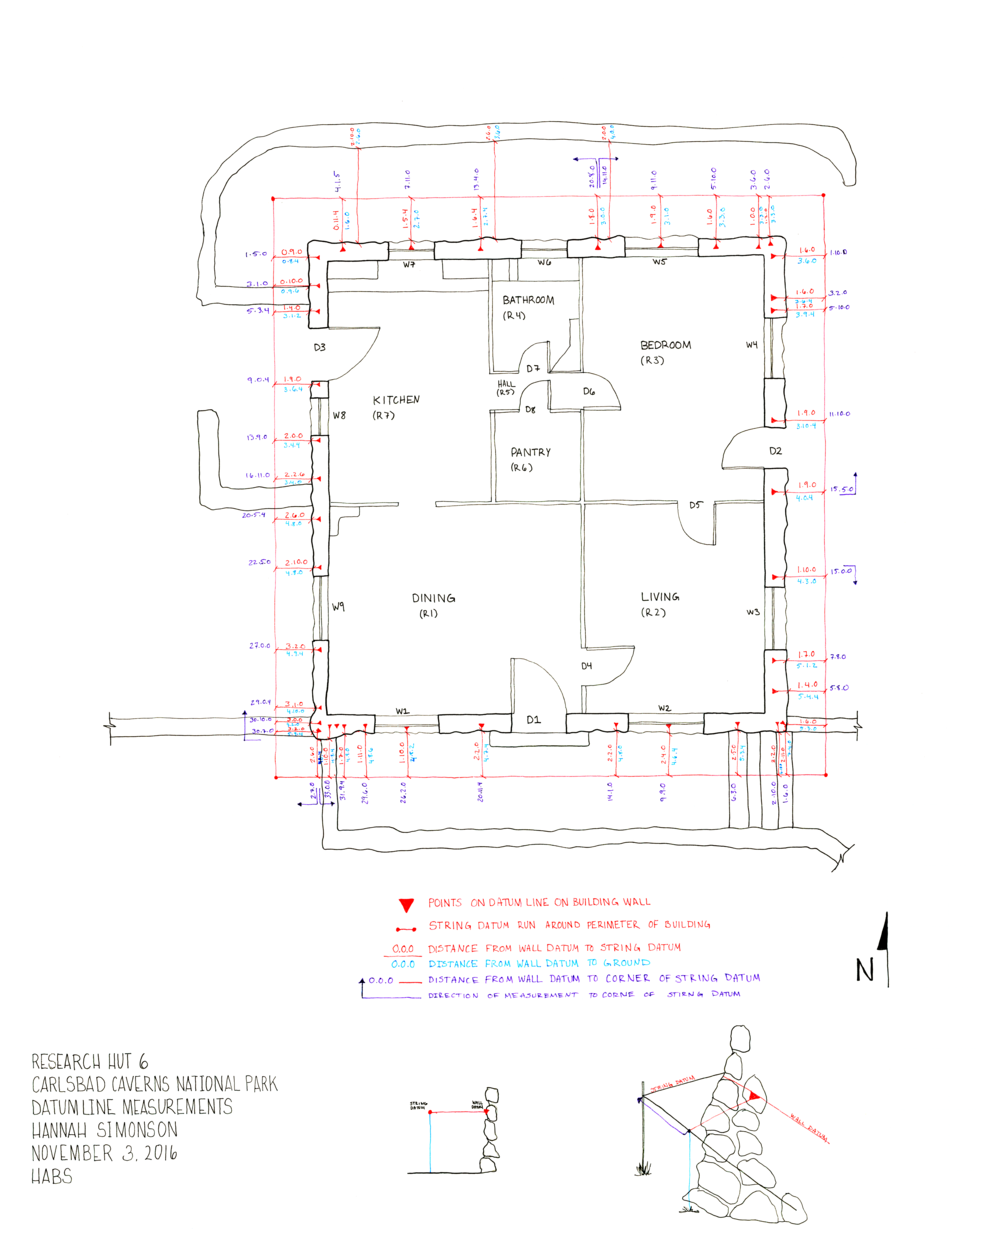 Due to the irregular, non-orthogonal reality of the building construction and the varied topography, we established a datum line and took measurements around the building for reference in measured drawings. Pen on paper.